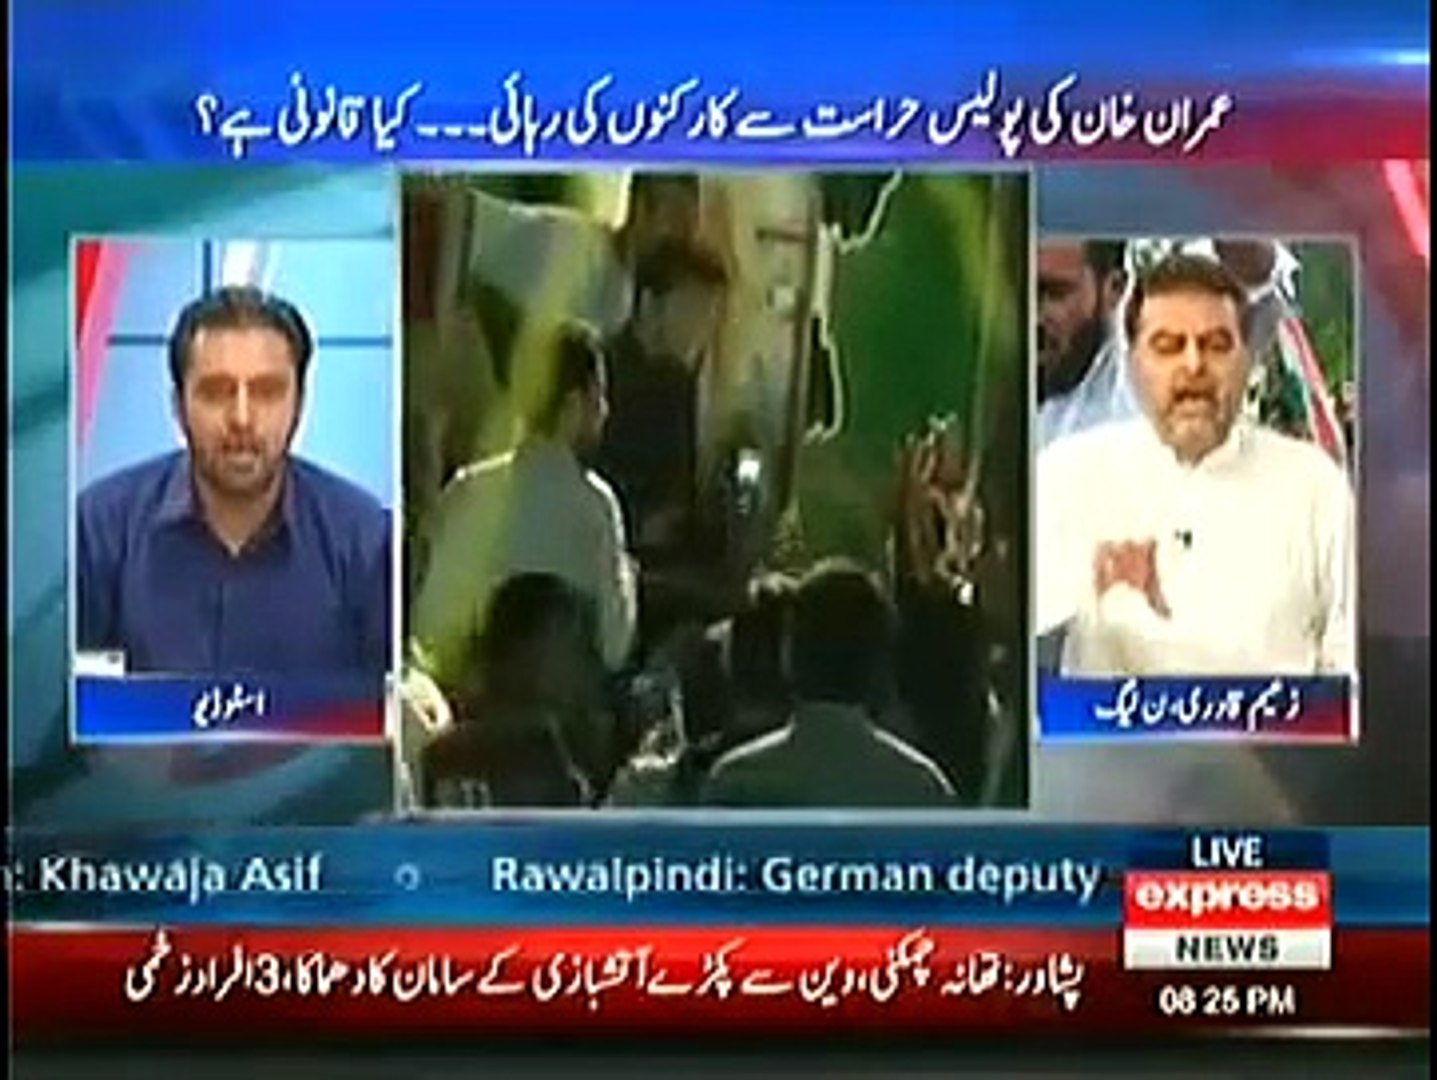 To The Point 15th December 2014 15 December 2014 Full Talk Show On Waqt News